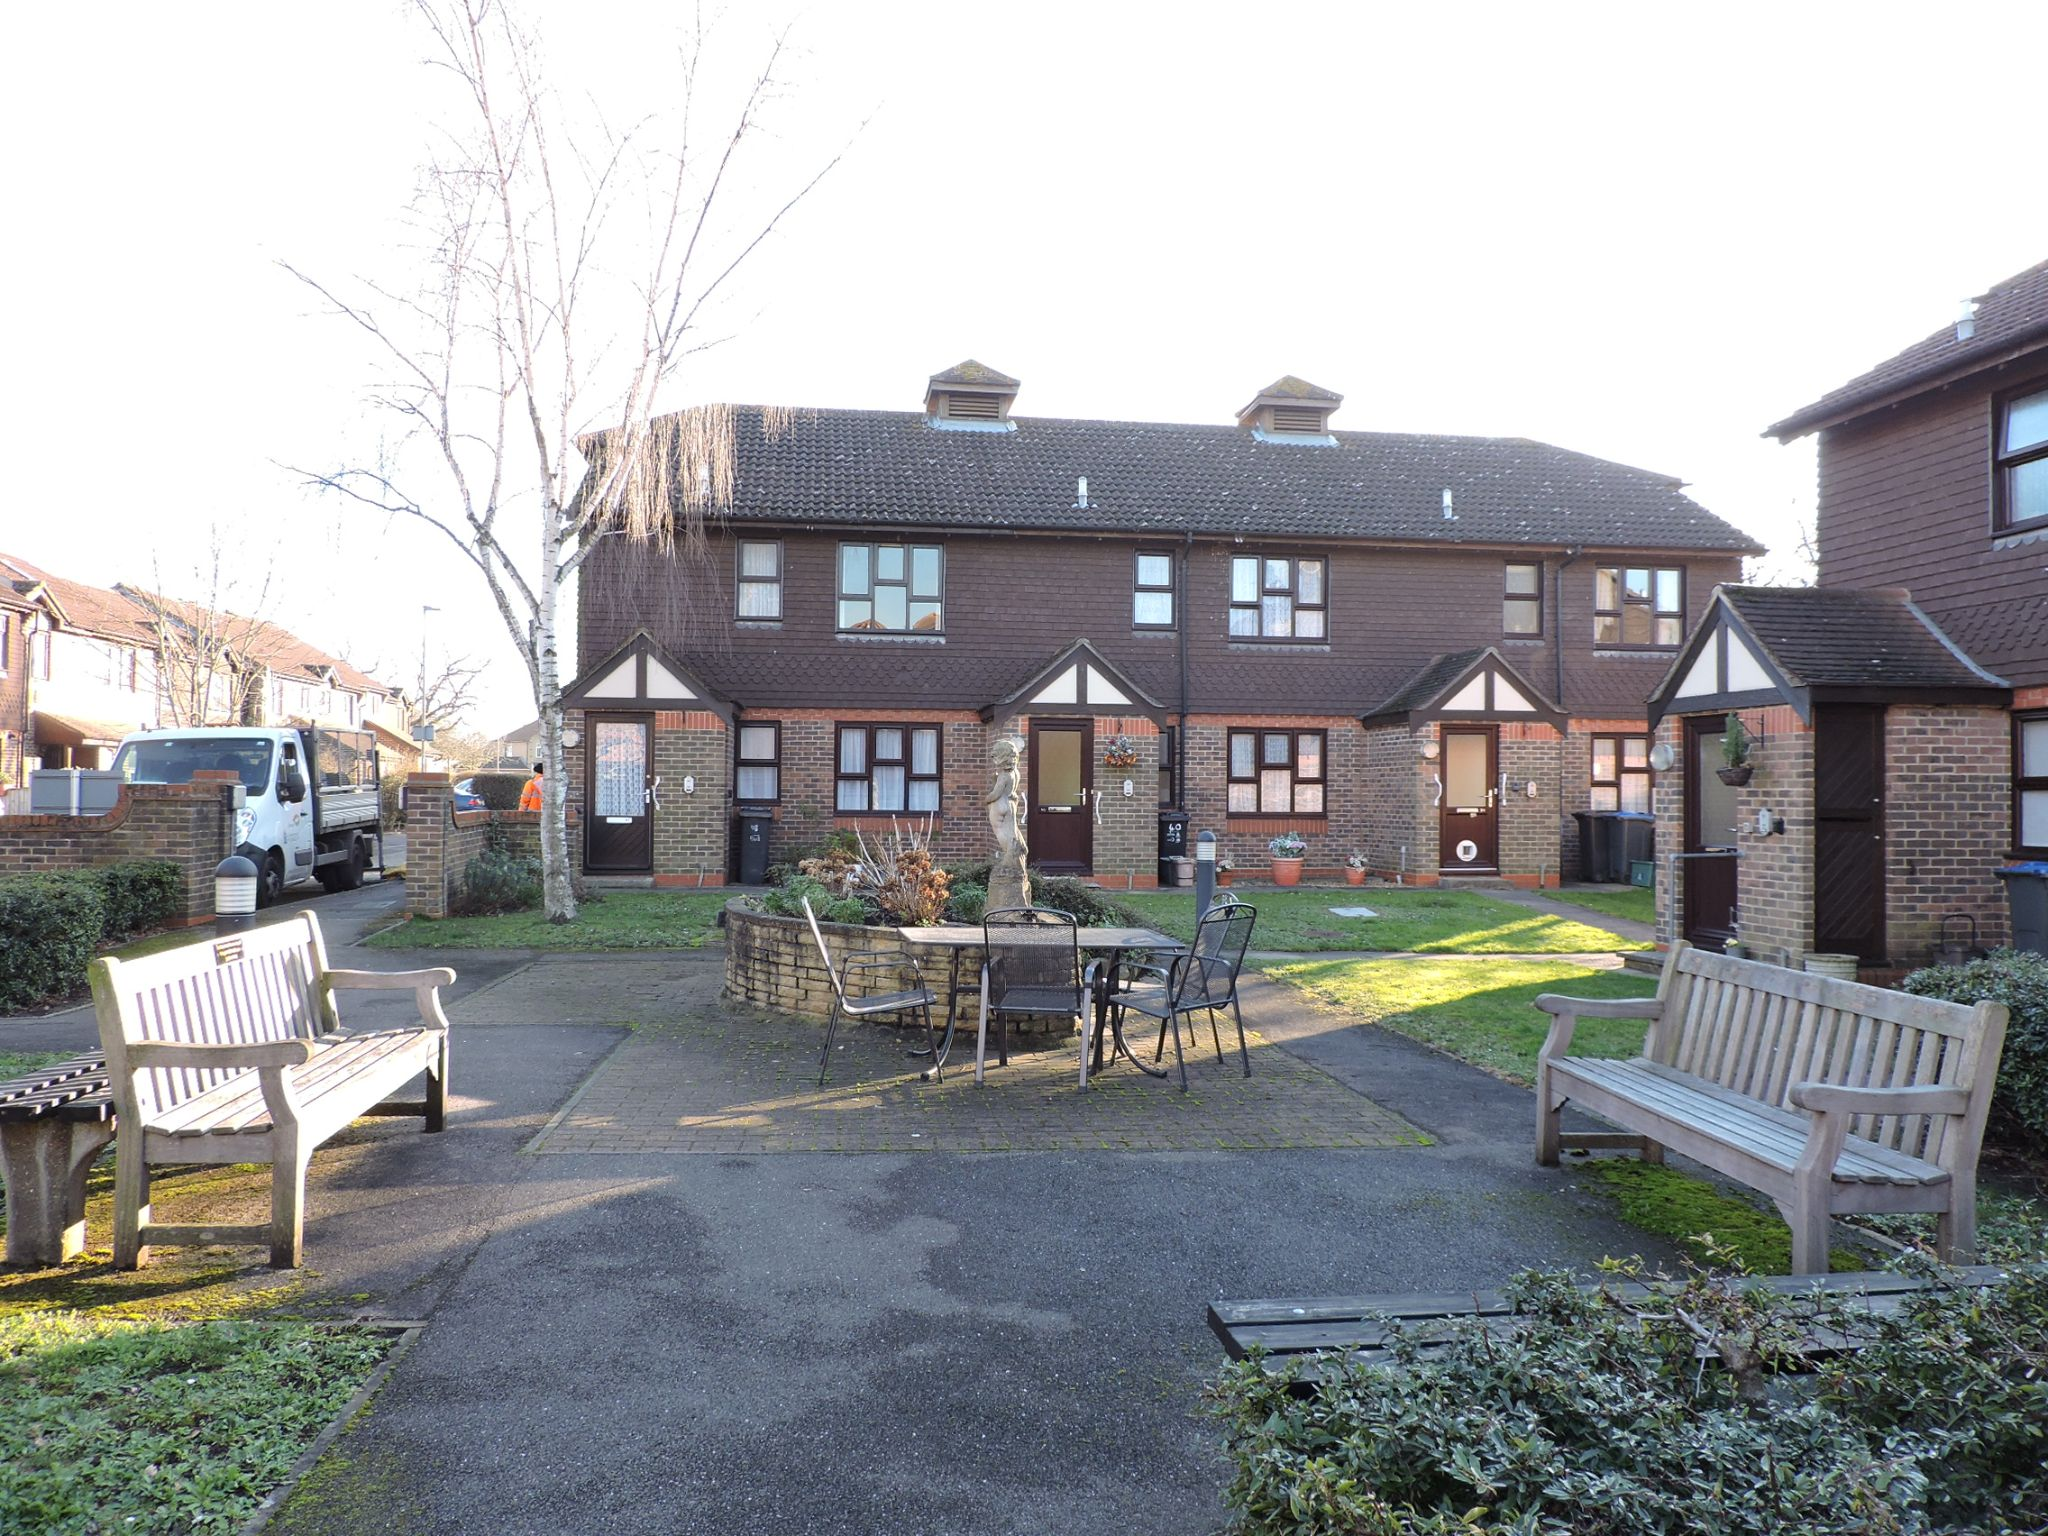 1 bedroom maisonette flat/apartment Sale Agreed in New Malden - Photograph 12